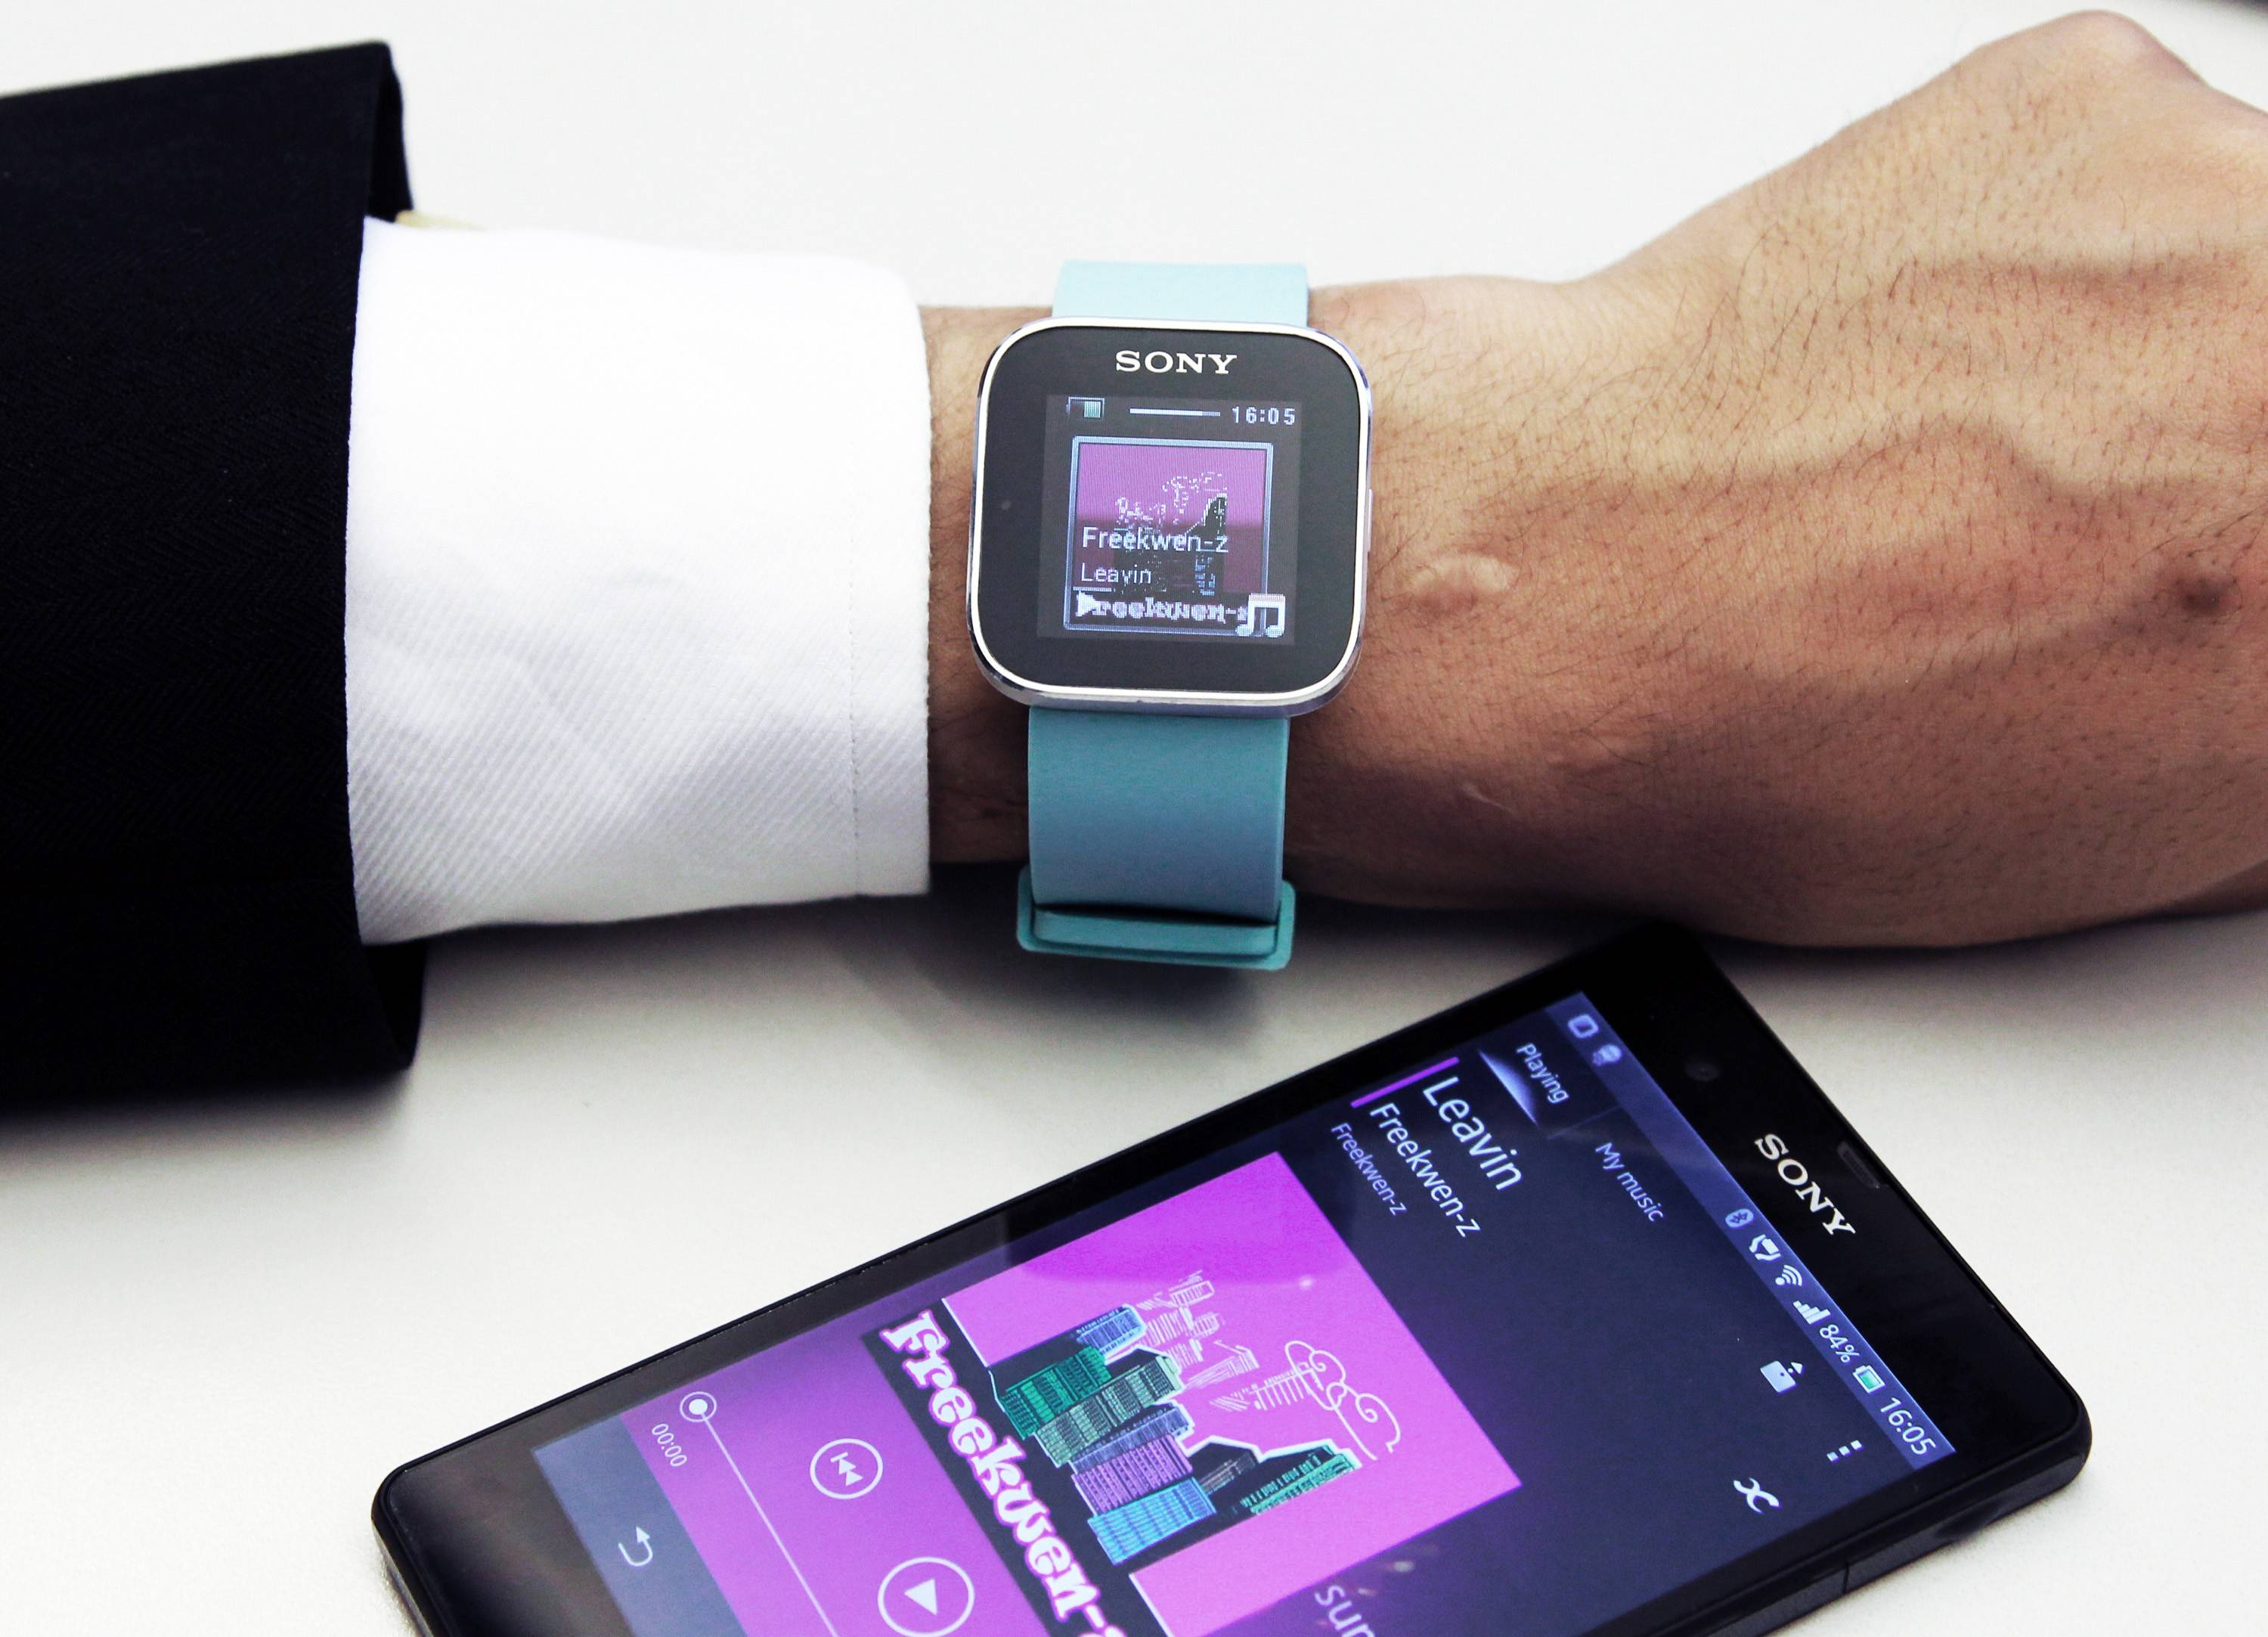 A Sony Mobile Communications Inc. SmartWatch MN2, top, is displayed with the company's Xperia smartphone at the Sony Corp. headquarters in Tokyo, Japan.